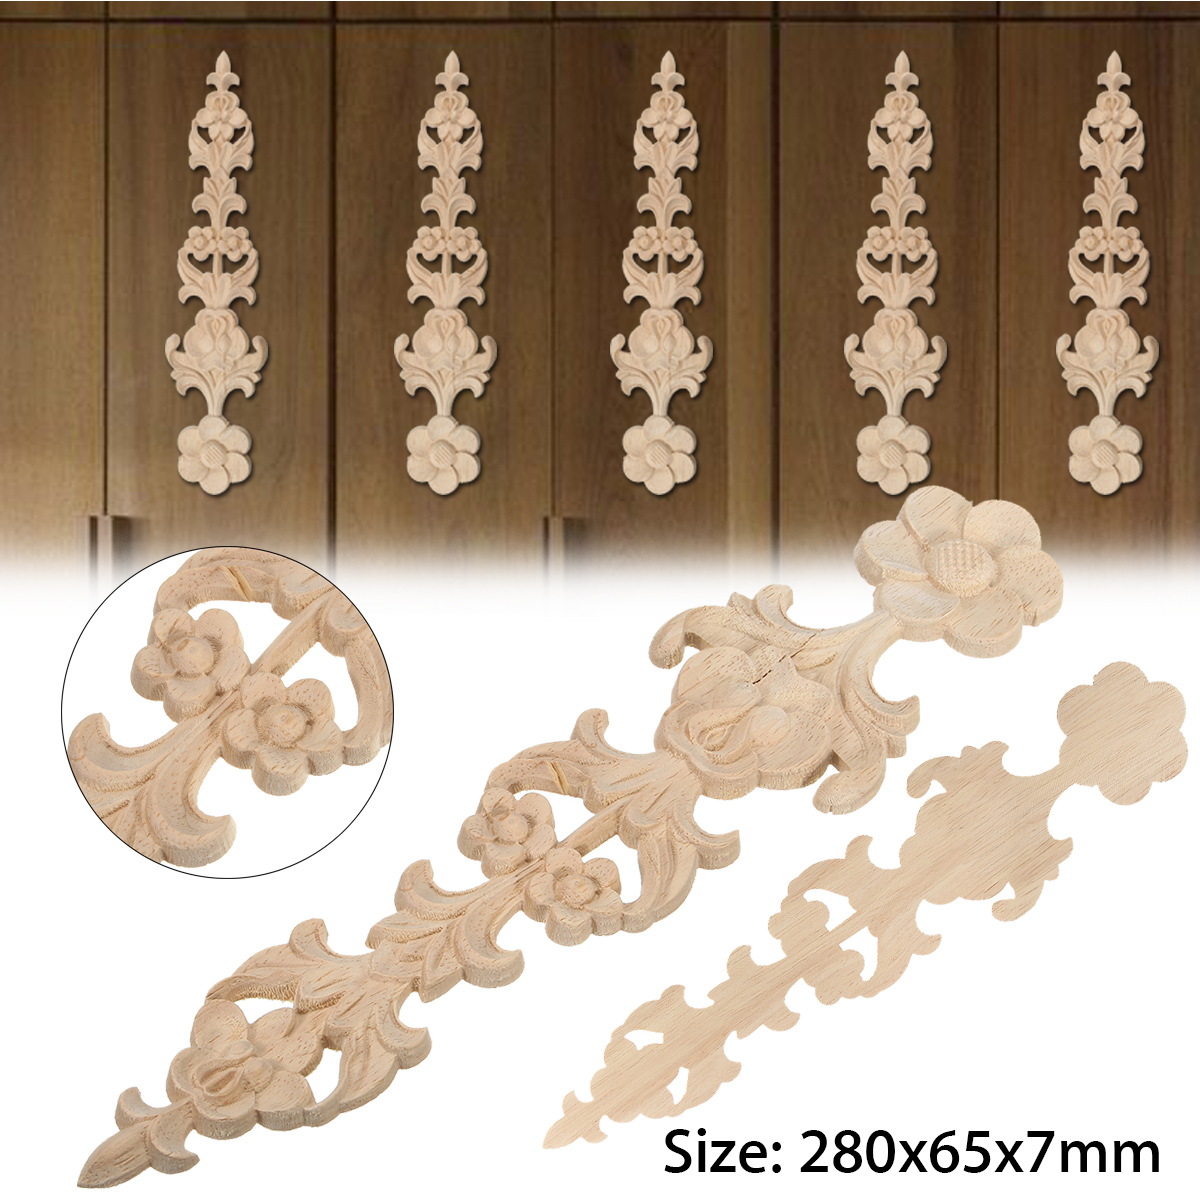 Wood Carved Applique Frame Onlay Furniture Decoration Unpainted 280x65x7mm